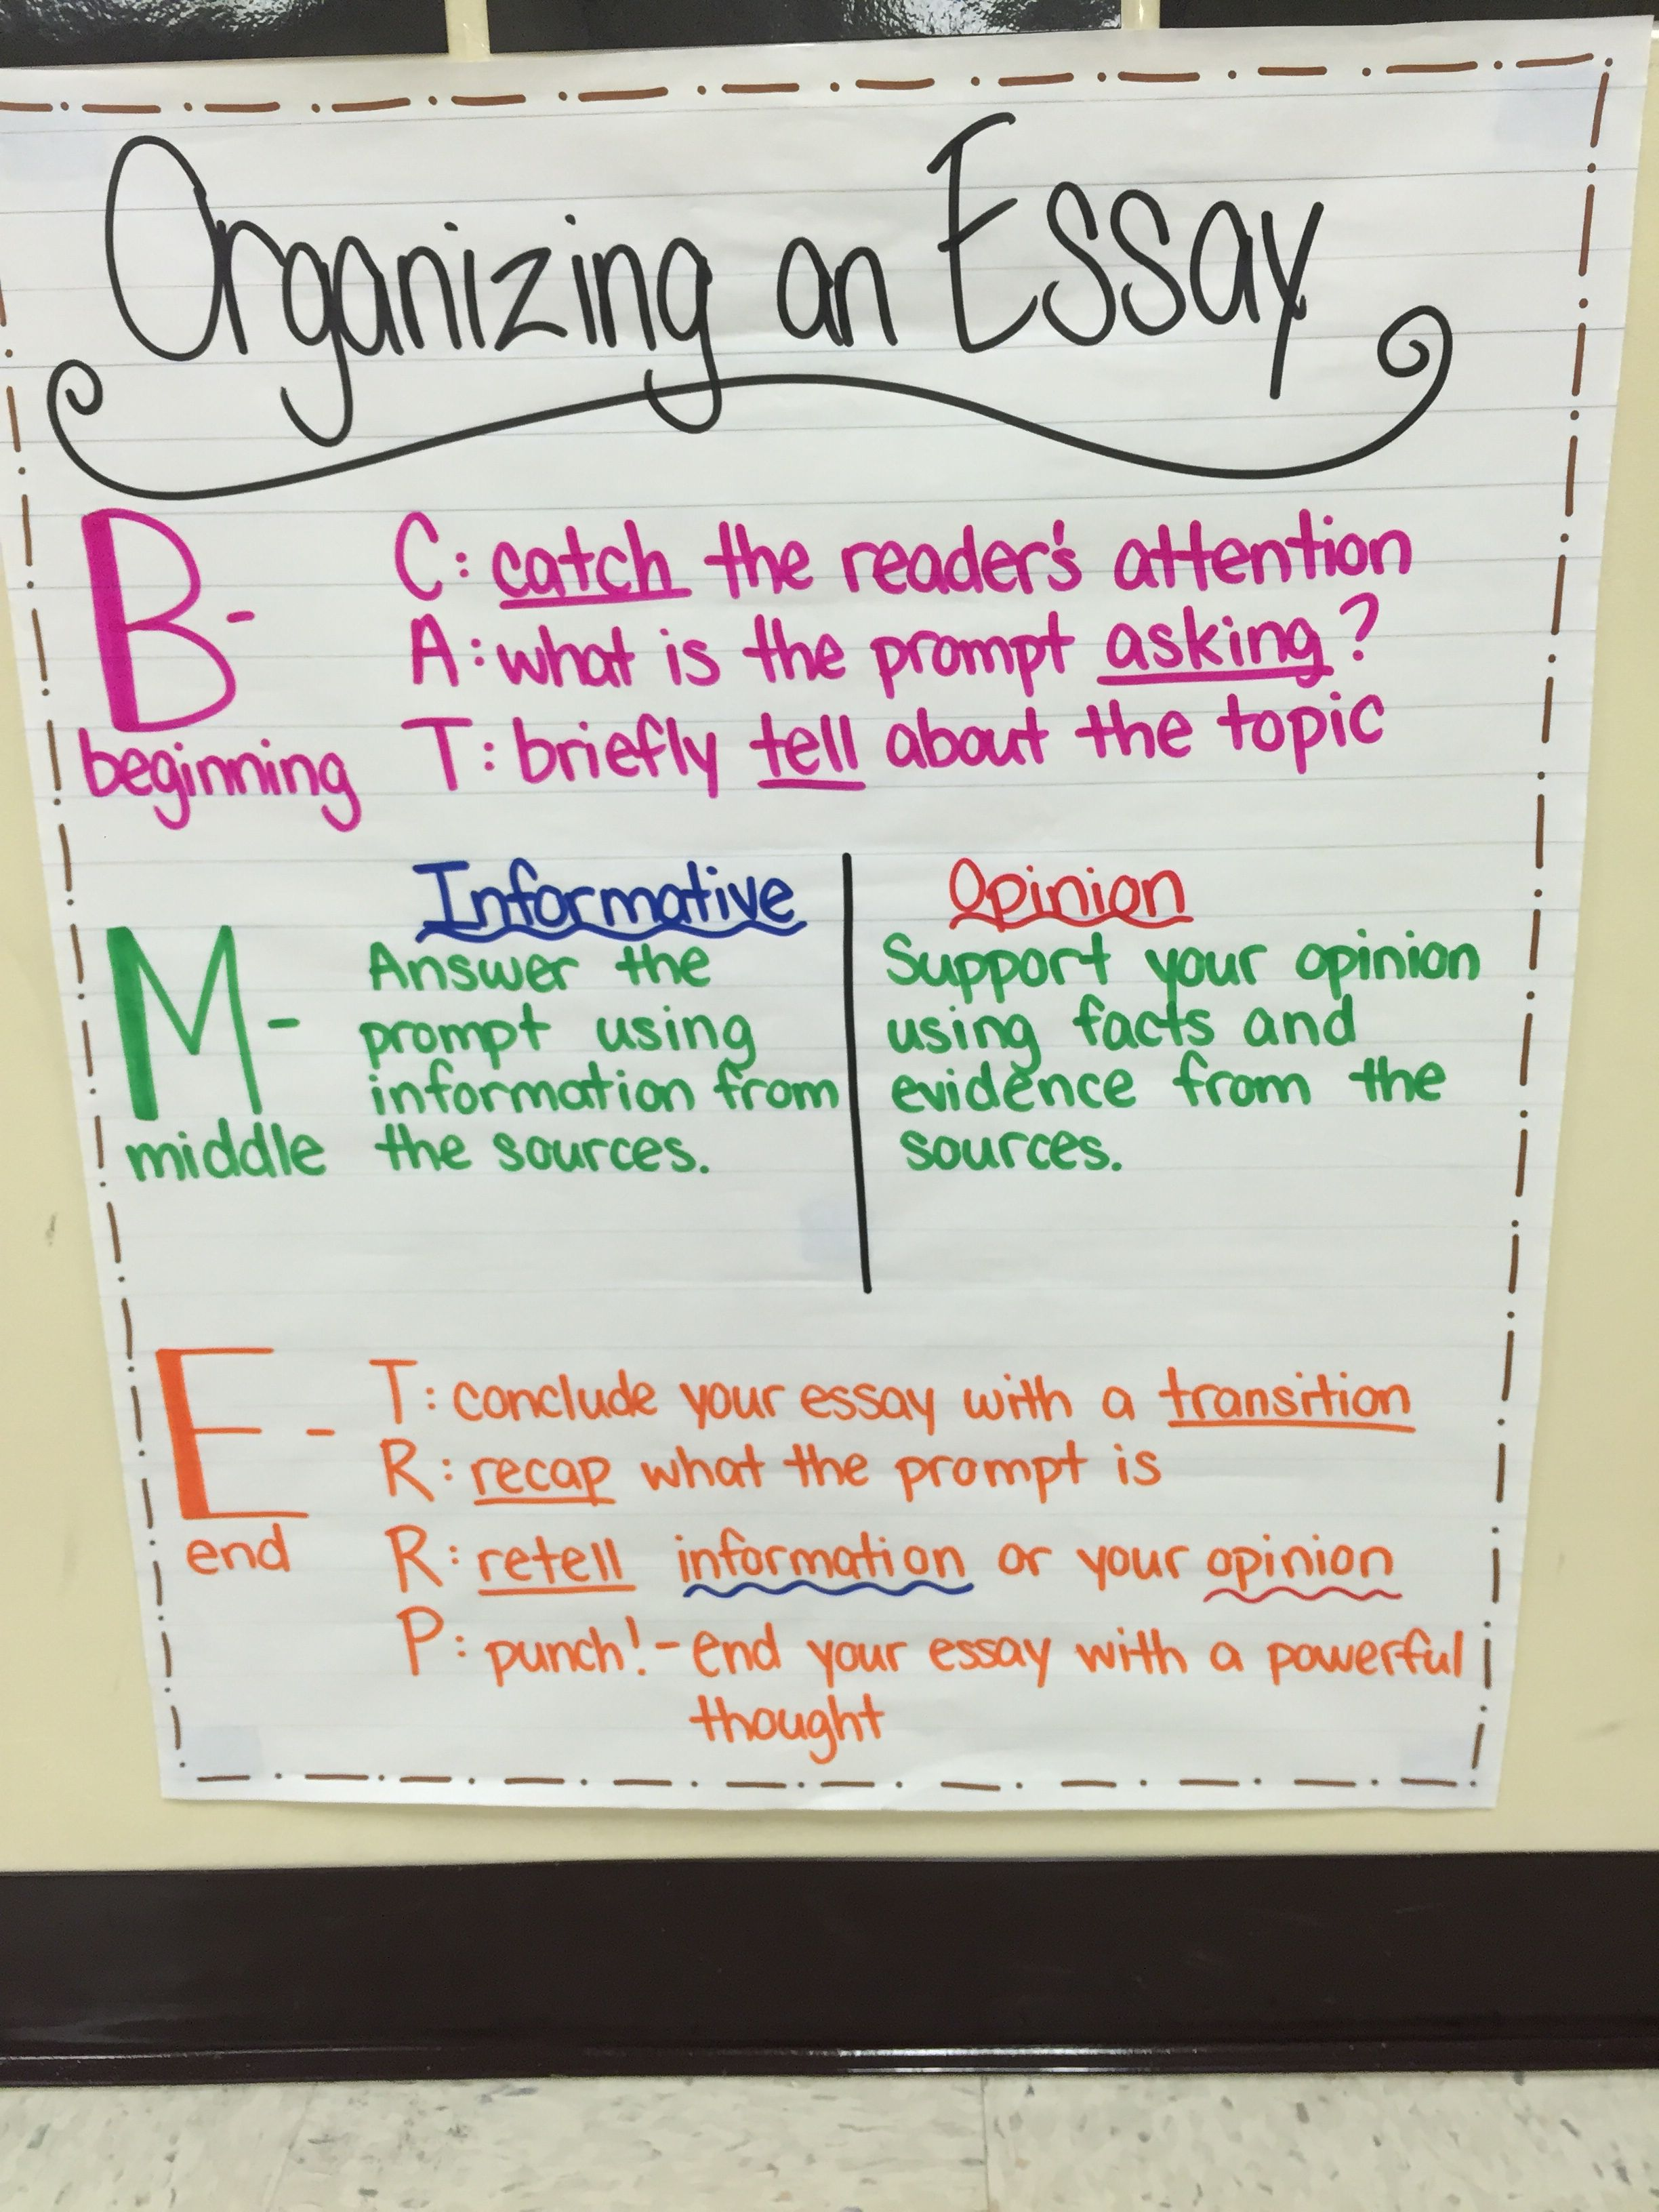 organizing an essay anchor chart fsa styled writing for th grade organizing an essay anchor chart fsa styled writing for 4th grade